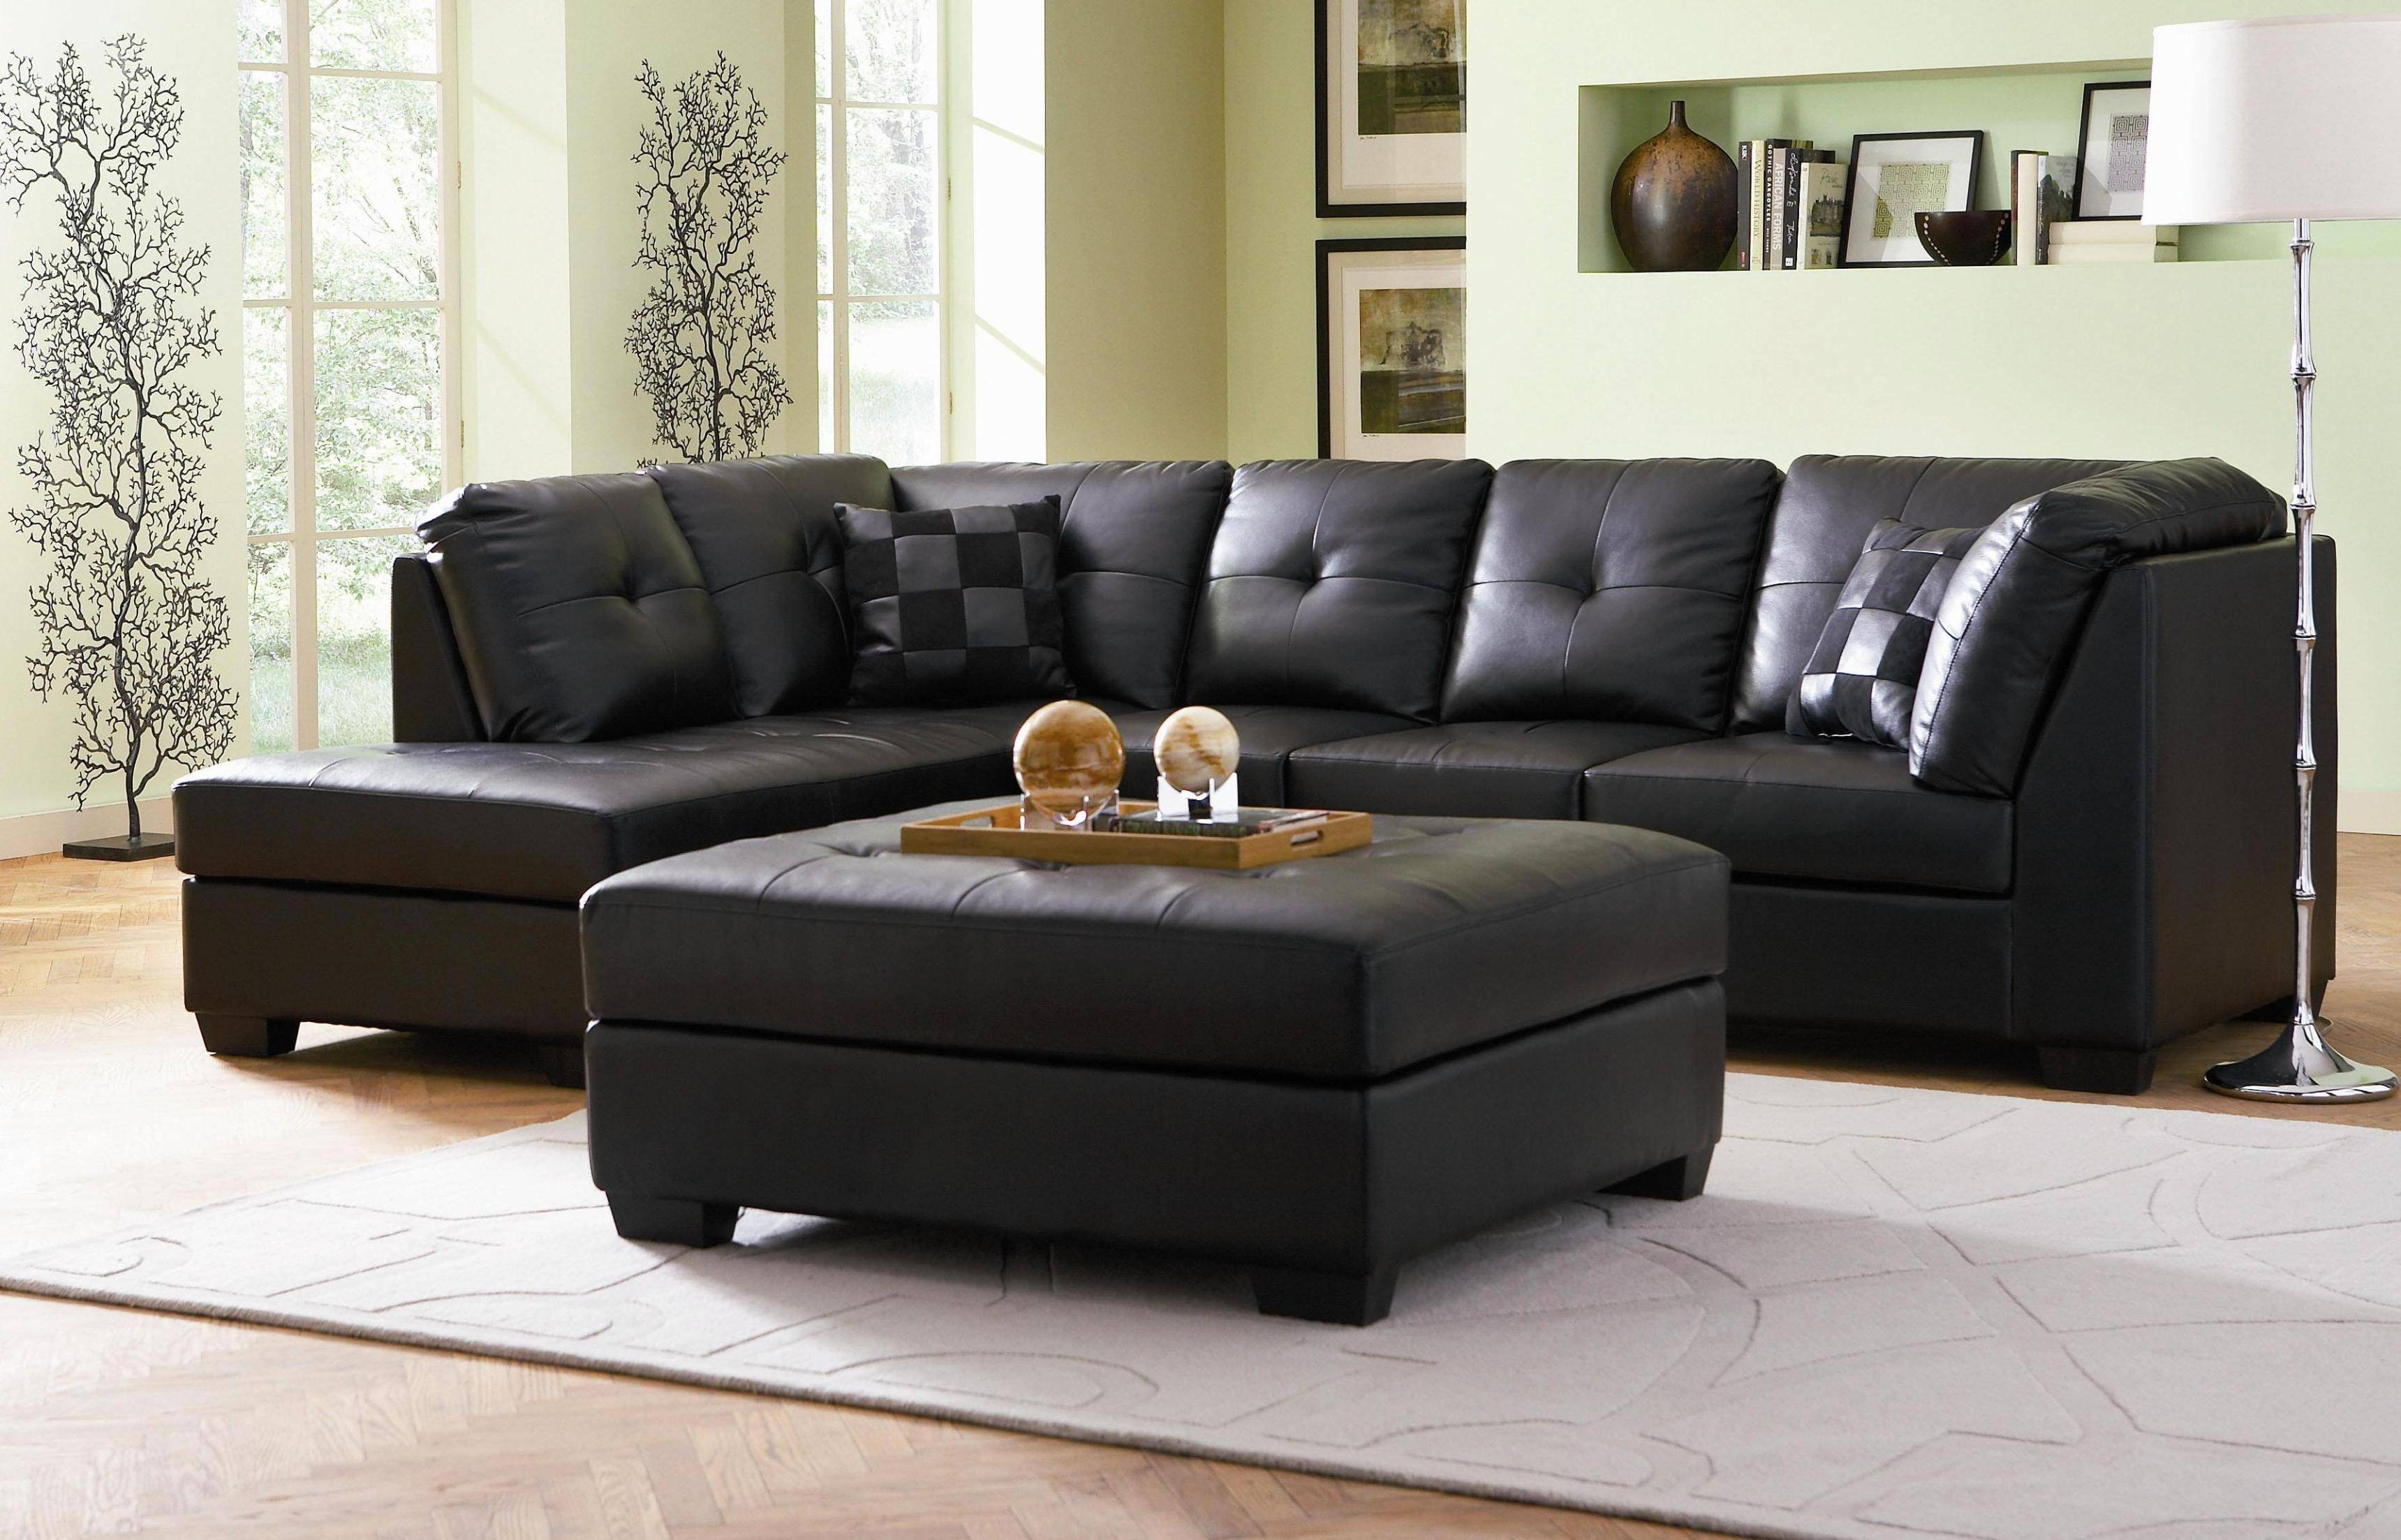 Sofas Center : Leather Sectional Sofas With Recliners Brown And With Sectional Sofas For Small Spaces With Recliners (View 26 of 30)